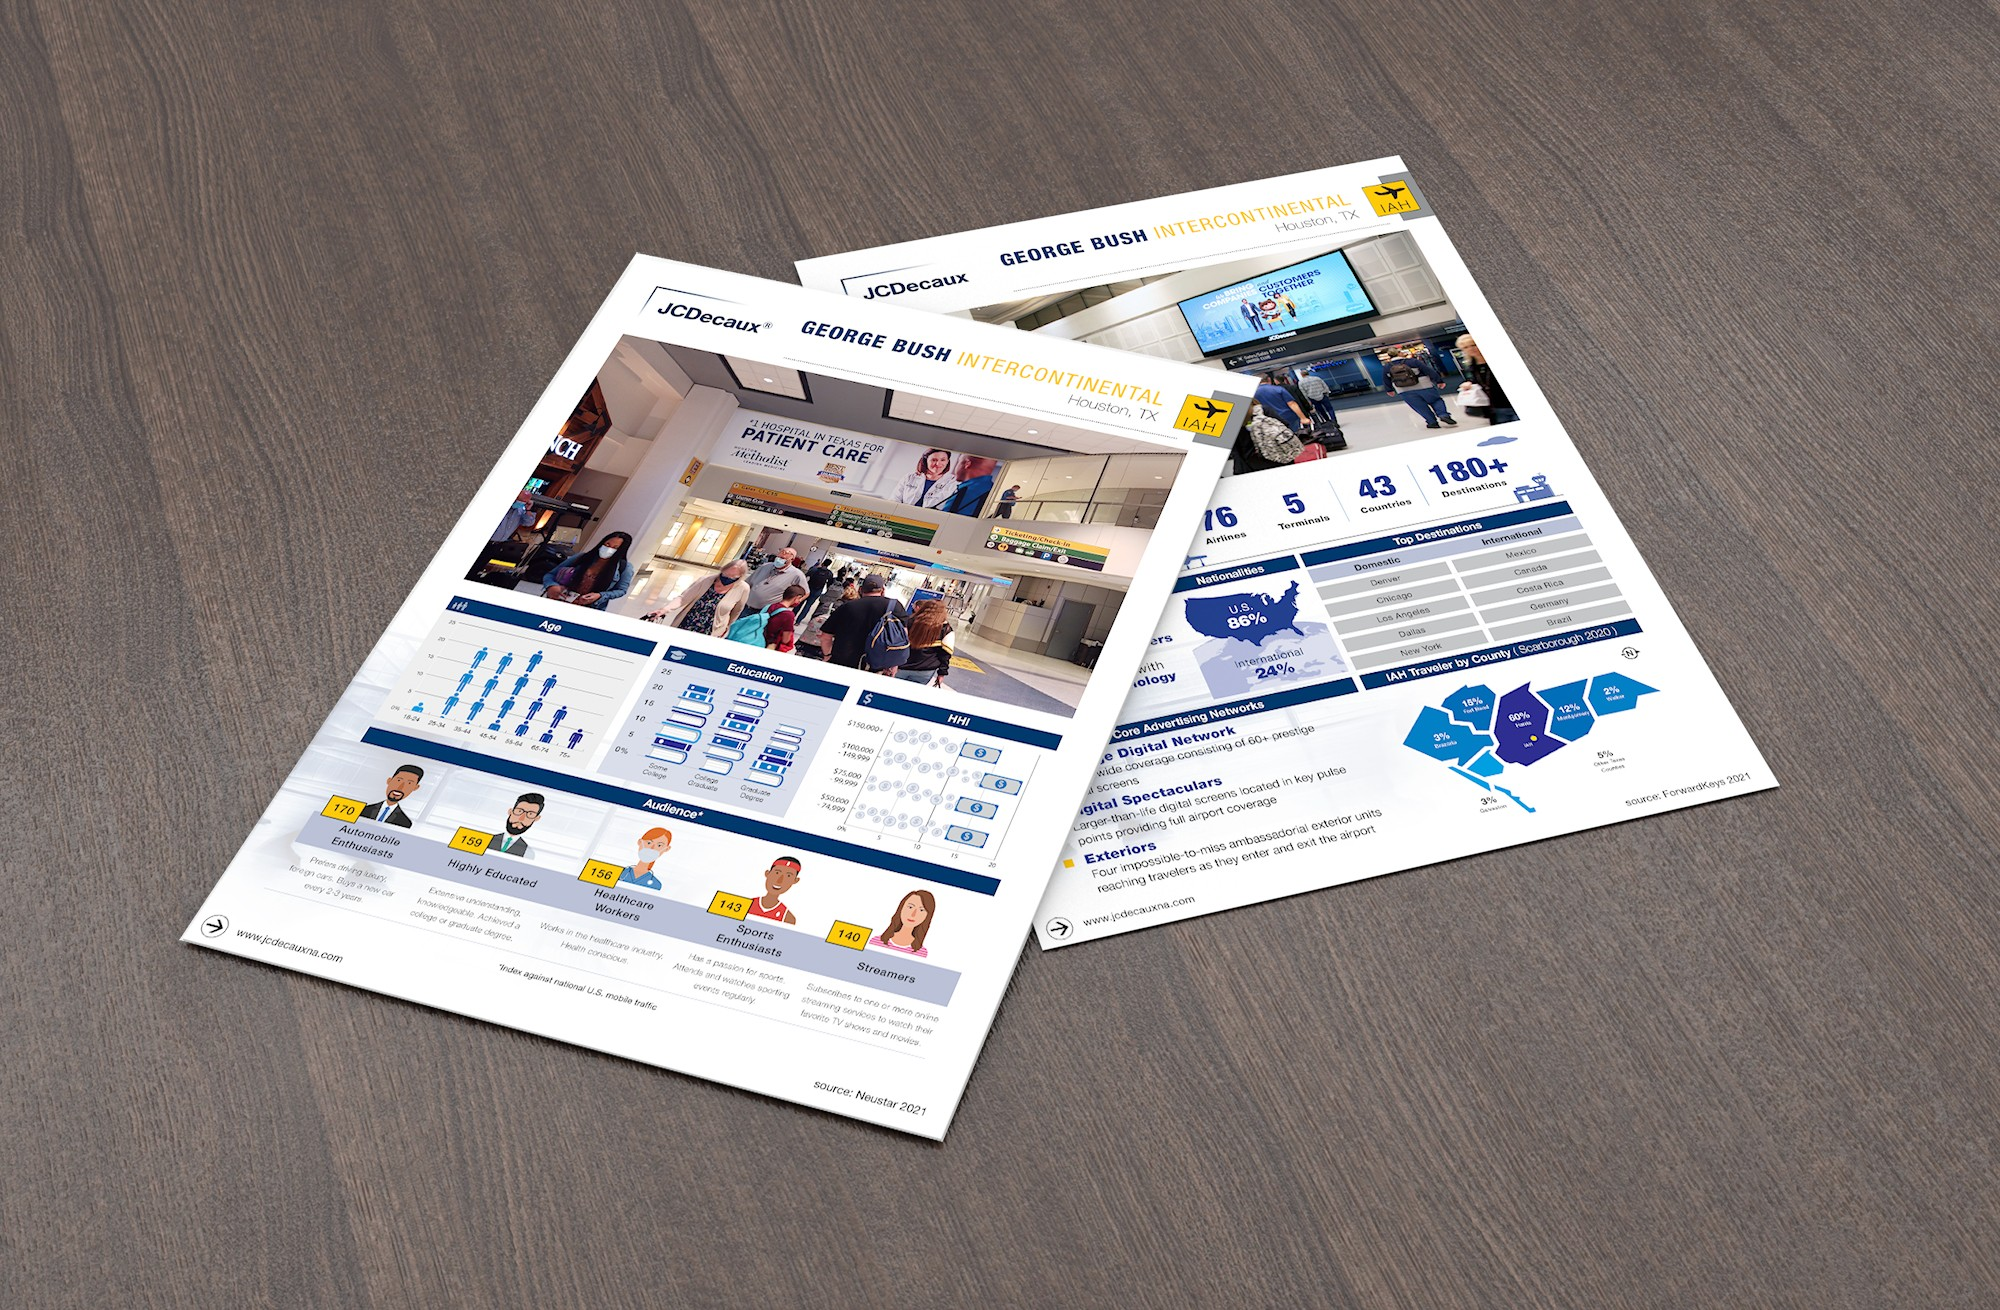 Updated Marketing Material Redesign